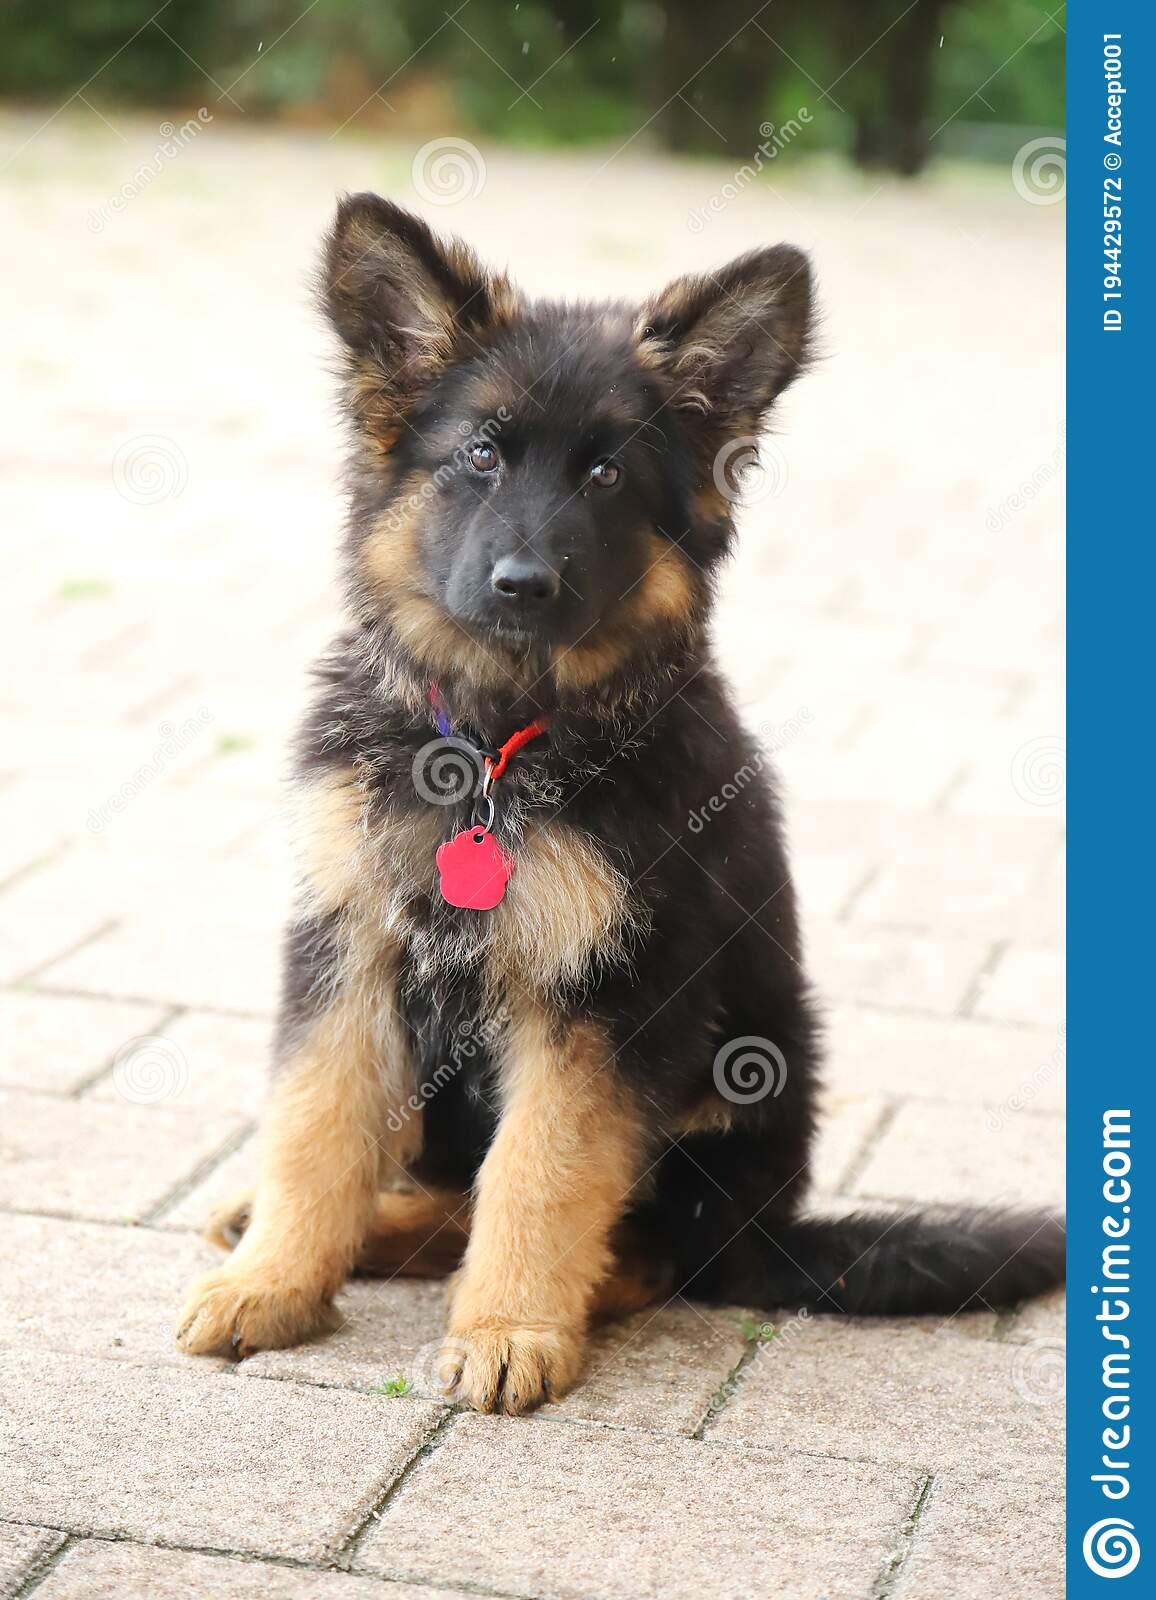 Little German Shepherd Pup With Black Mask And Black And Tan Long Hair Sitting Stock Photo Image Of Cute Club 194429572